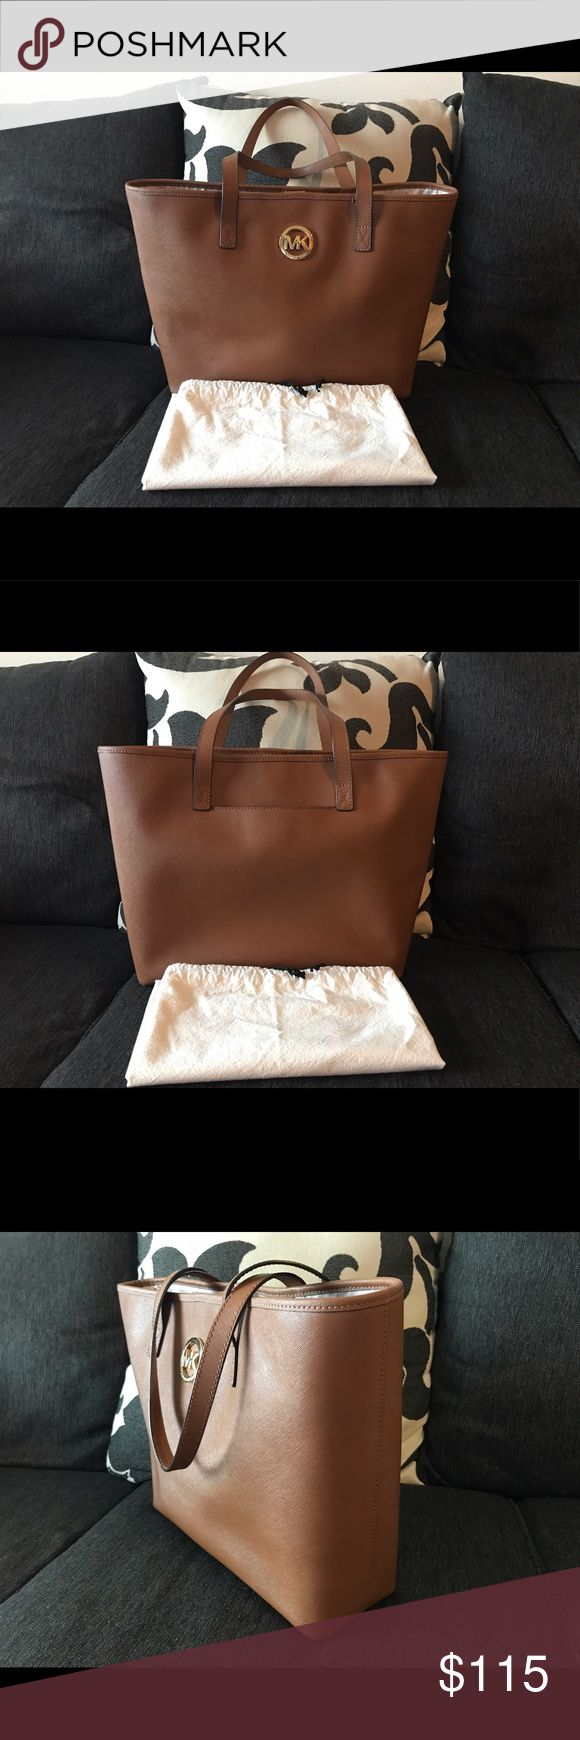 "Michael Kors - Large Luggage Totes! 💯% AUTHENTIC Beautiful Michael Kors Large Luggage Tote With Gold Detailing! Include NONE MK Dust Bag! Plenty Of Room For Everything! Lightly Used In Like New Condition! Measurements: 17"" Top and 13.5"" Bottom Length x 12""H x 4""D! Handle Drop 9.5""! LOOKING TO SELL ONLY! Reasonable Offers Welcome! Happy Poshing. Michael Kors Bags Totes"